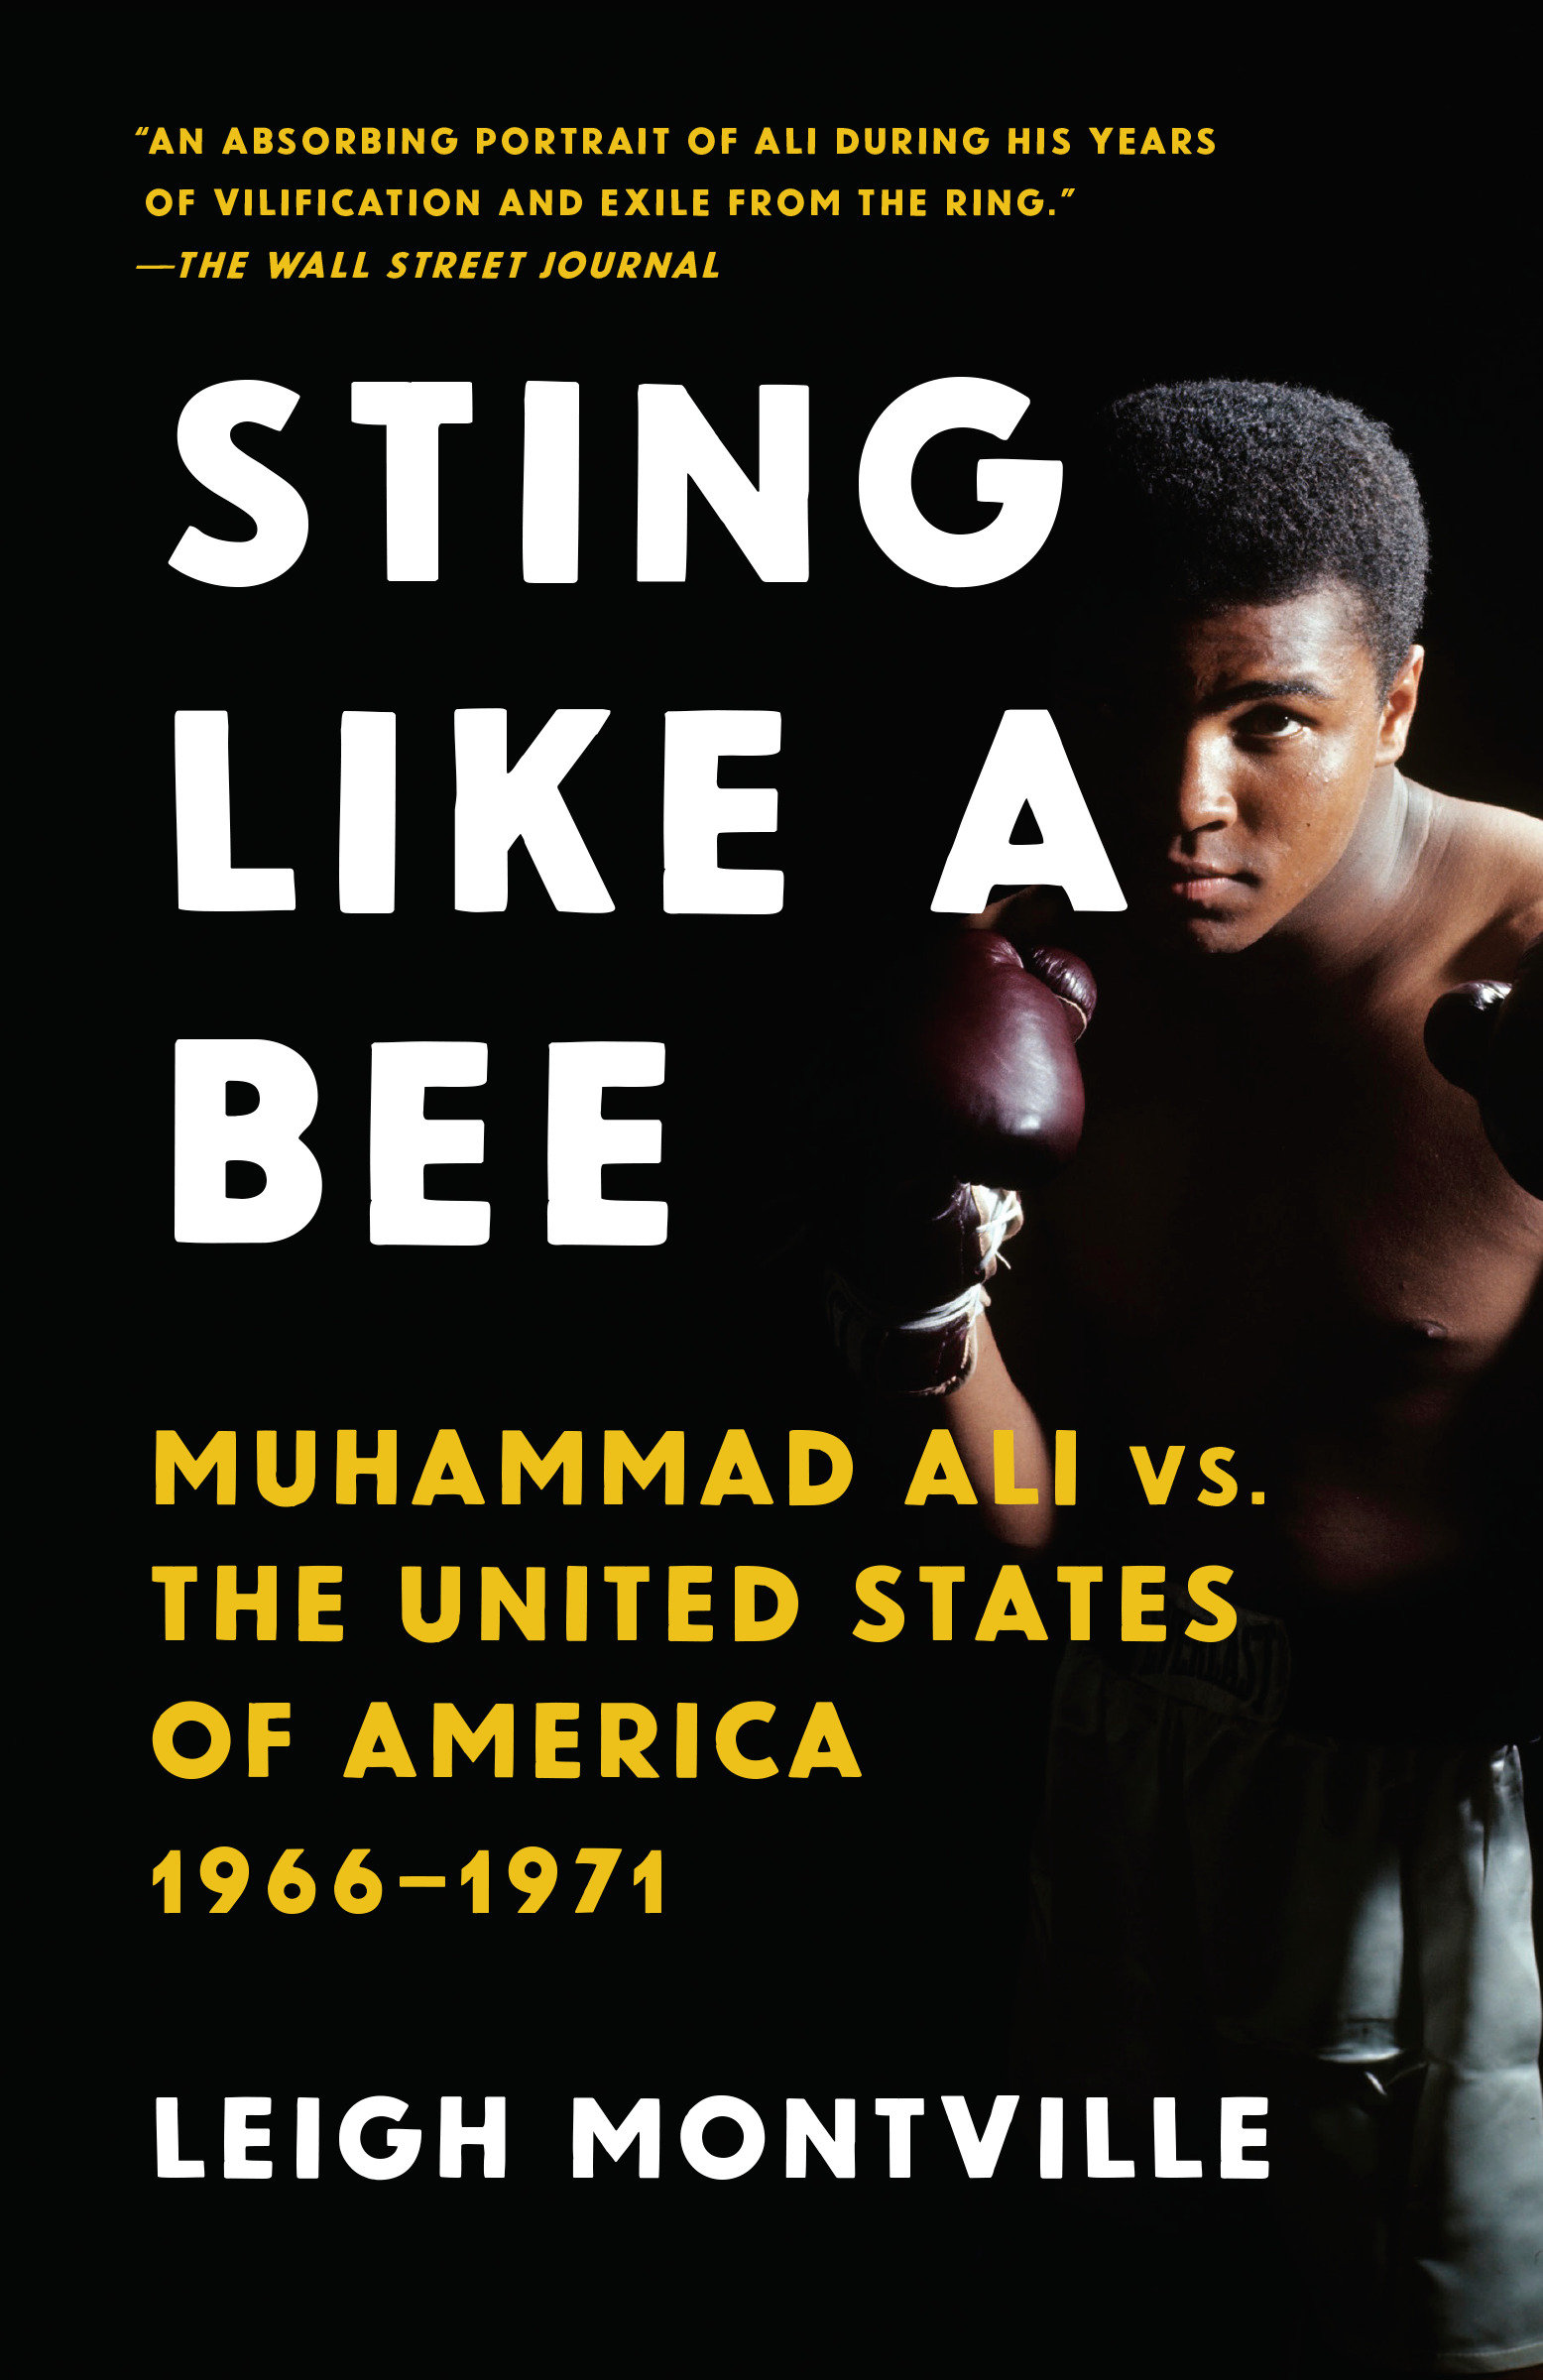 Sting Like a Bee Muhammad Ali vs. the United States of America, 1966-1971